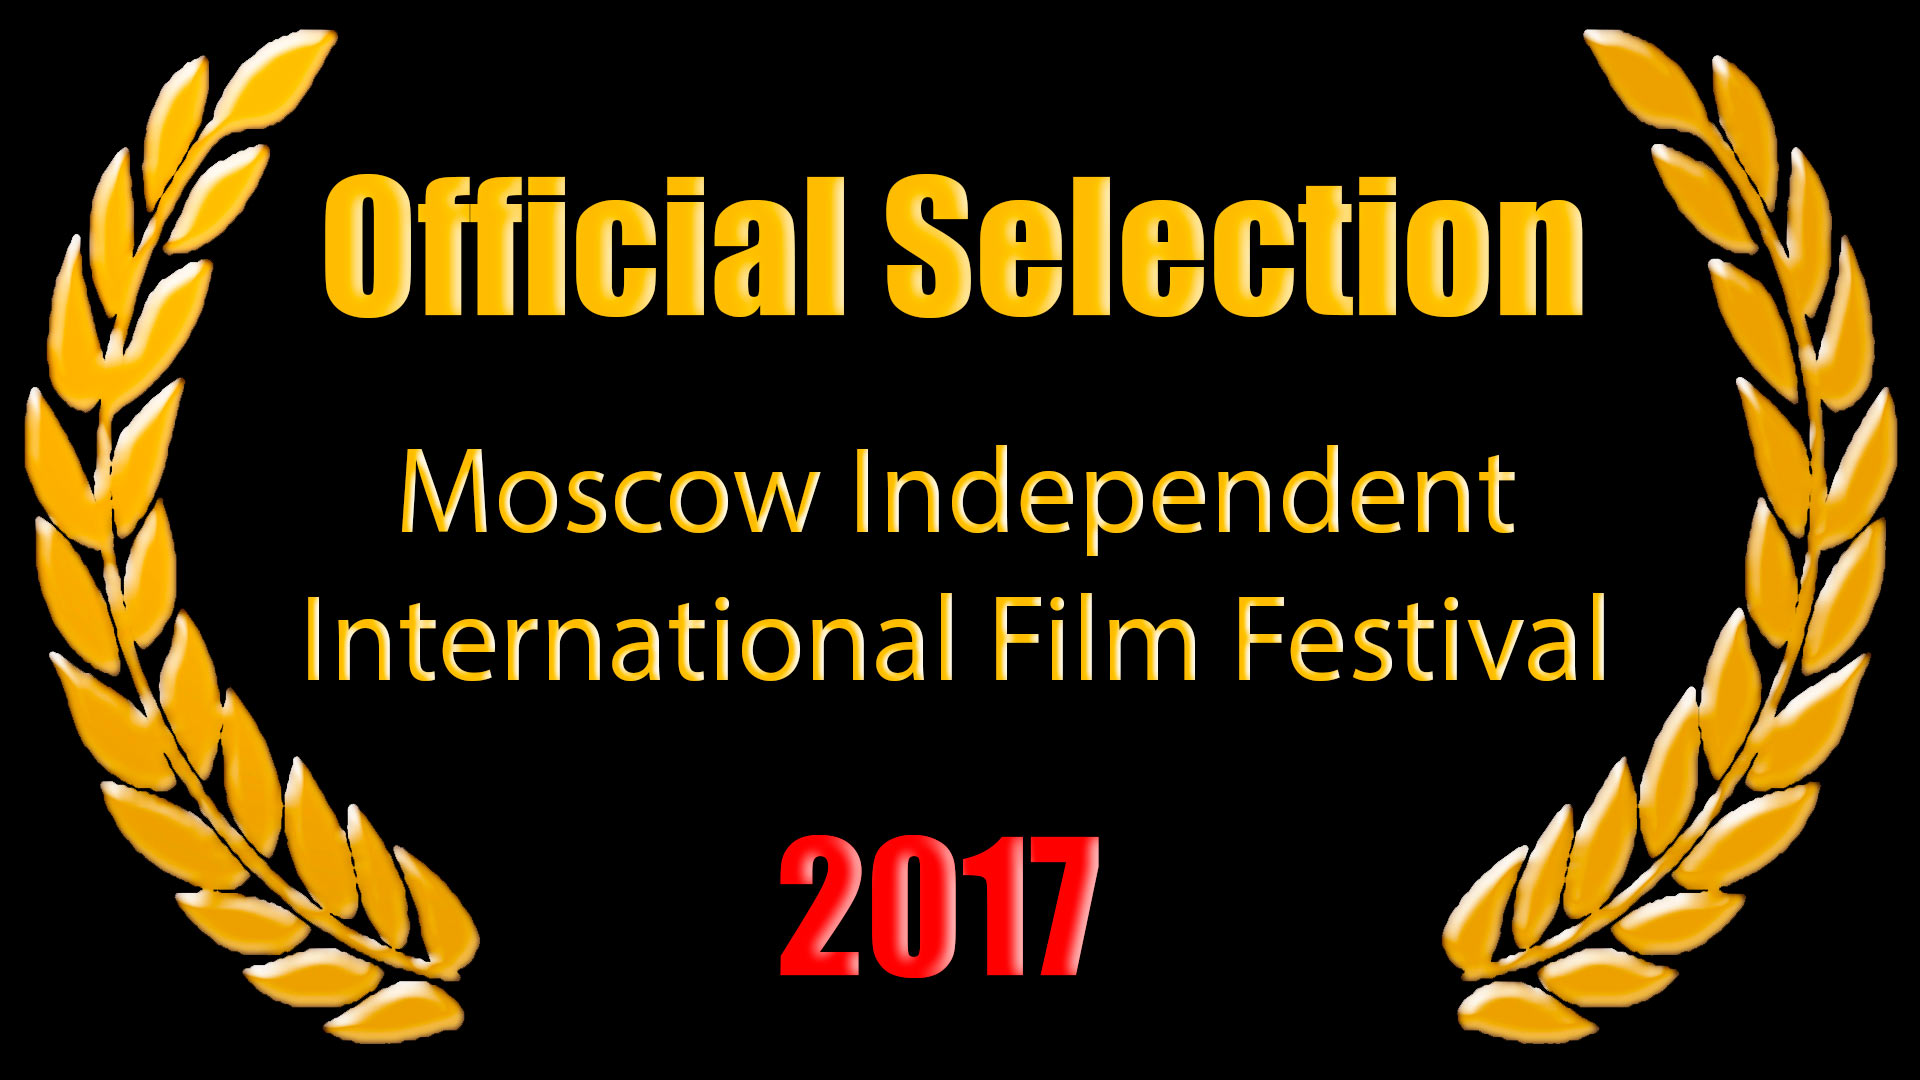 Official Selection - Moscow Independent International Film Festival 2017